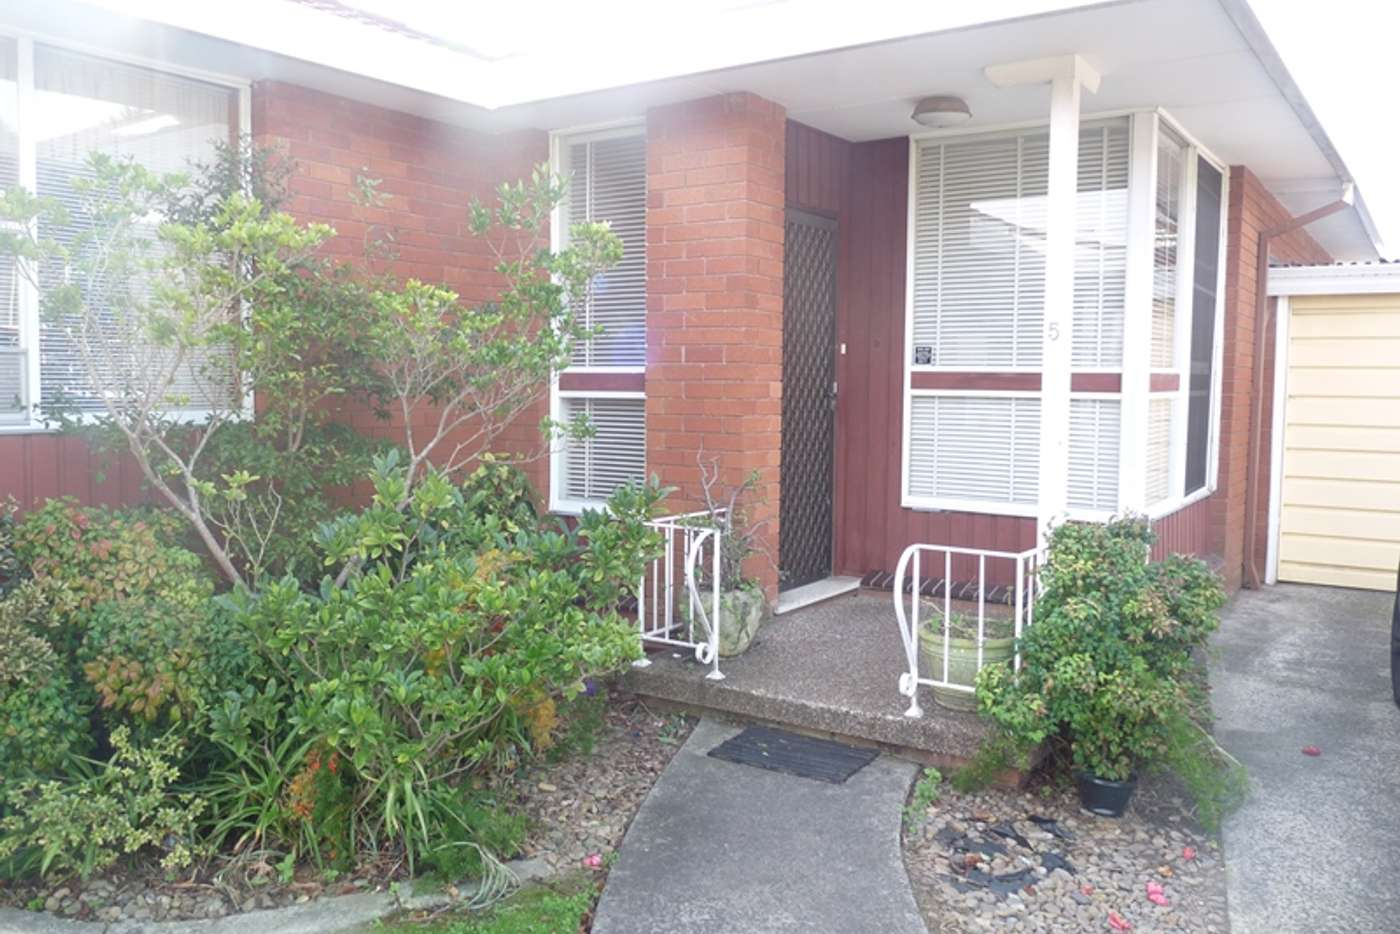 Main view of Homely villa listing, 5/14-16 Mimosa Street, Bexley NSW 2207